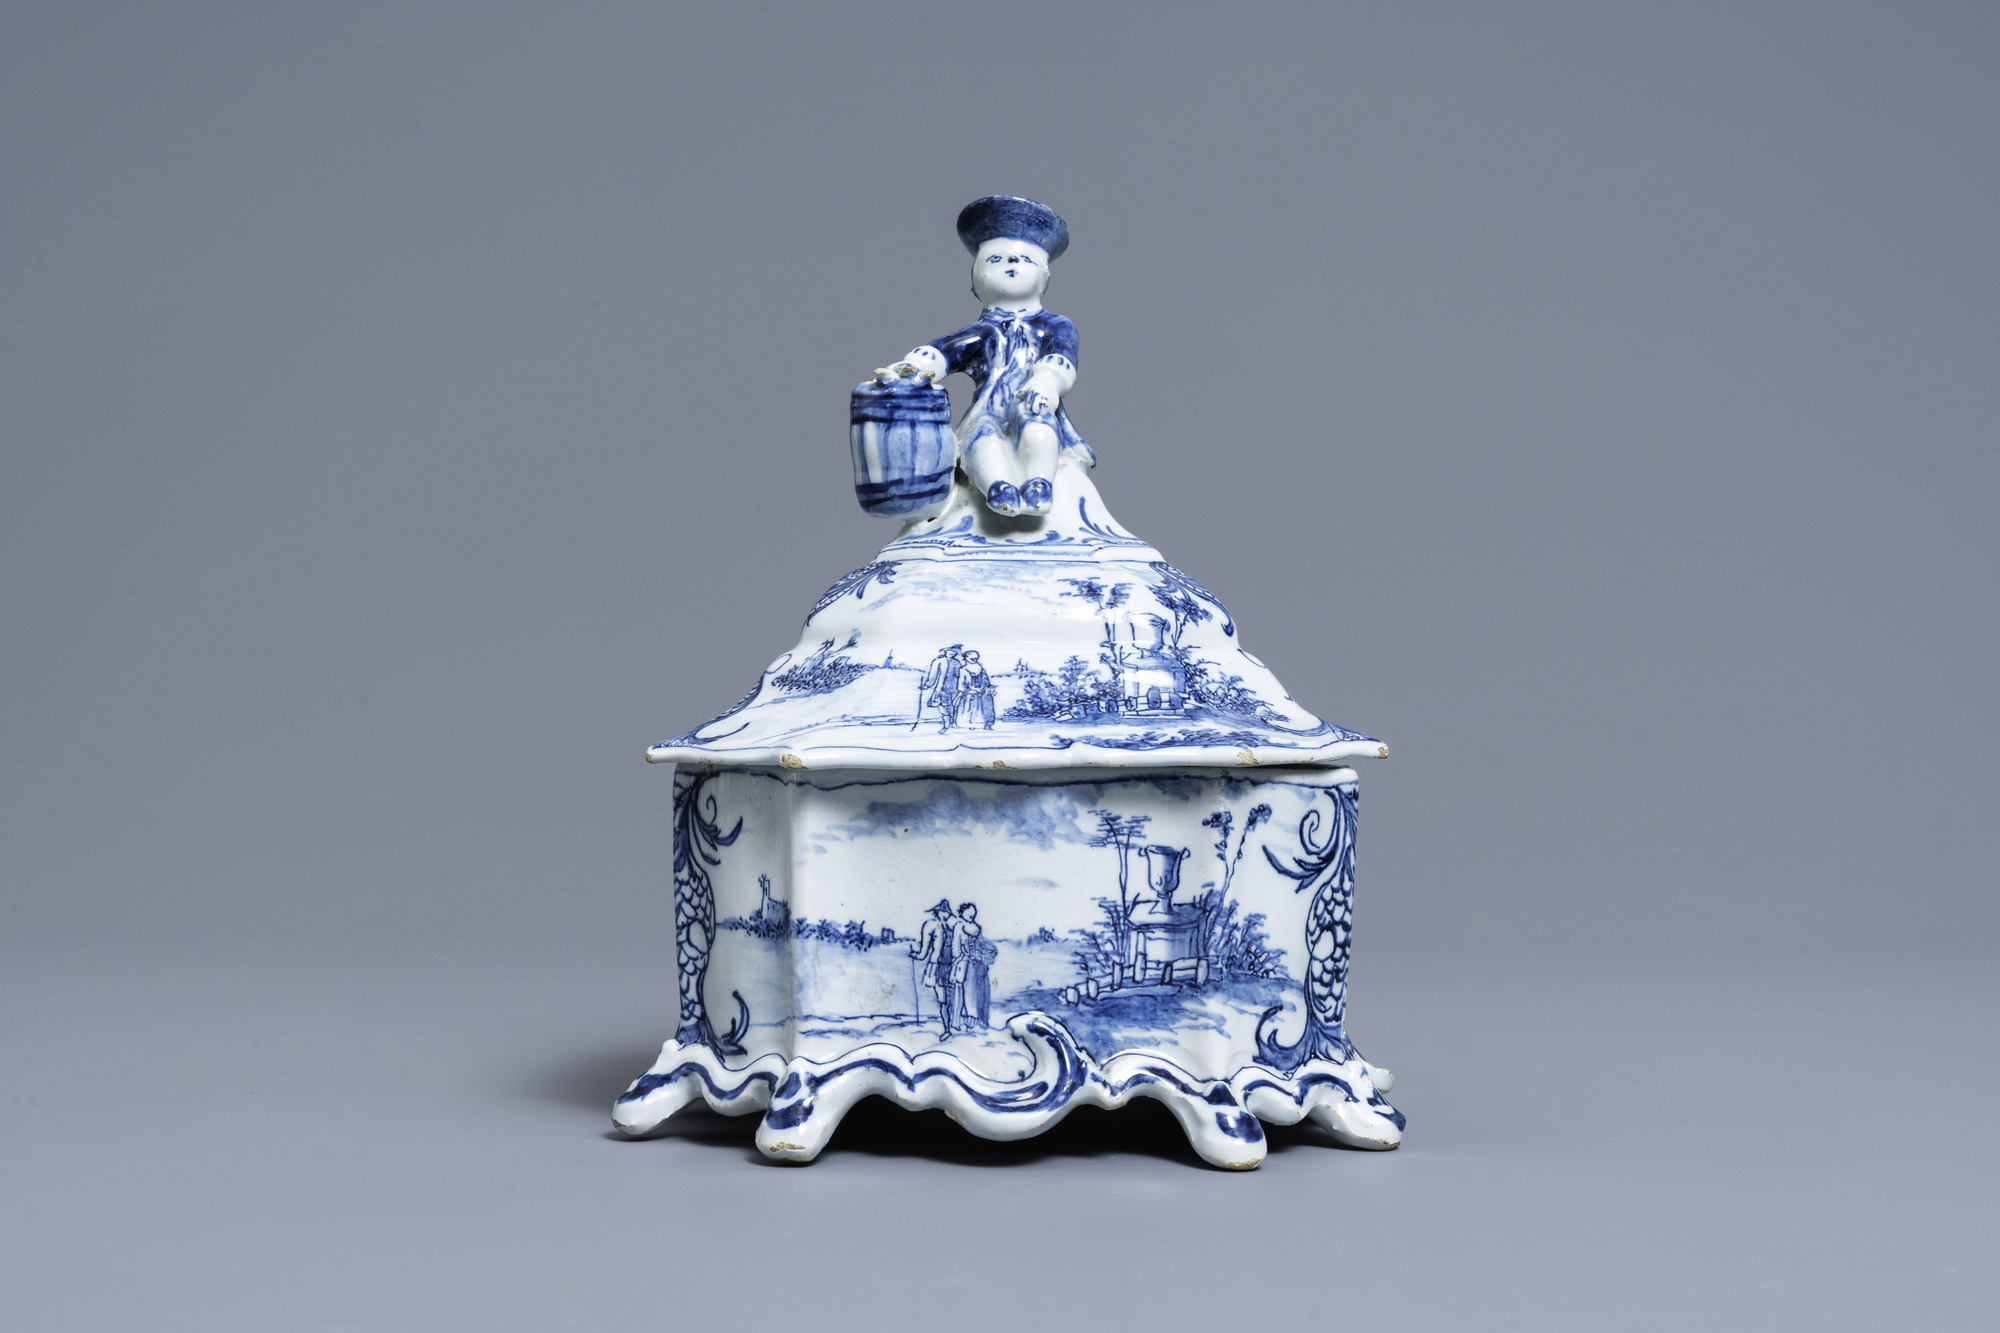 A Dutch Delft blue and white tobacco box and cover with a boy near a barrel, 18th C.